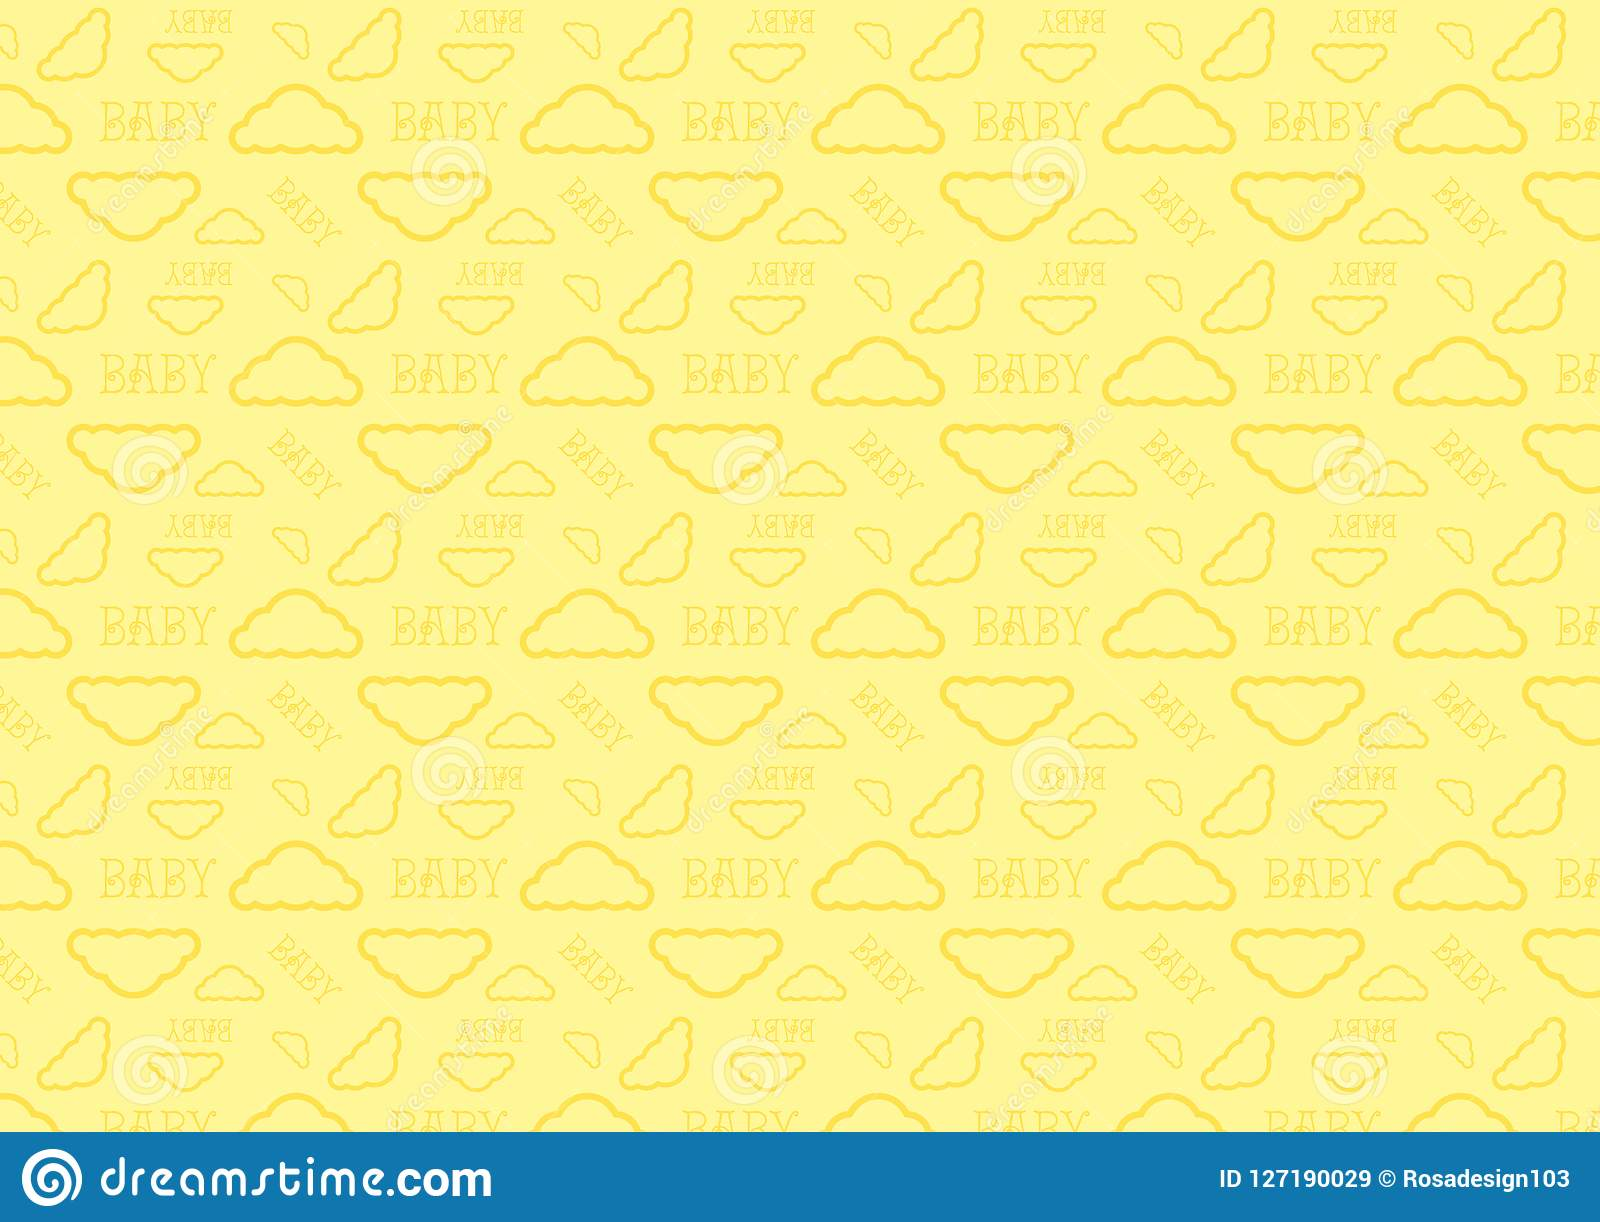 Baby Sleep Time Cloud Seamless Pattern Full Resizable ...